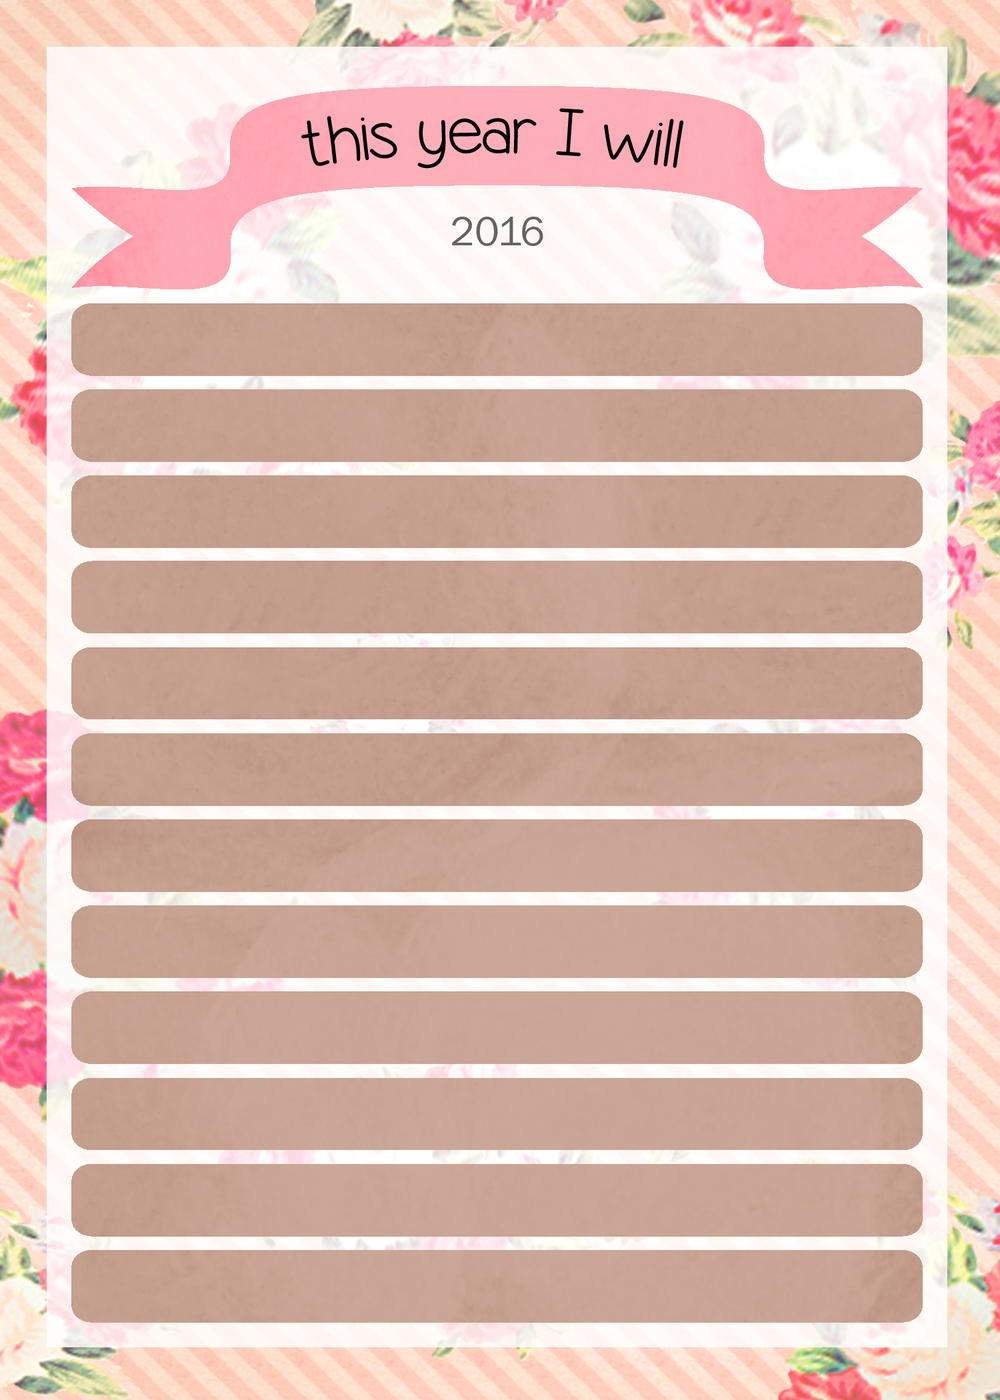 Goal Setting For 2016 Printable Diyideacenter Com